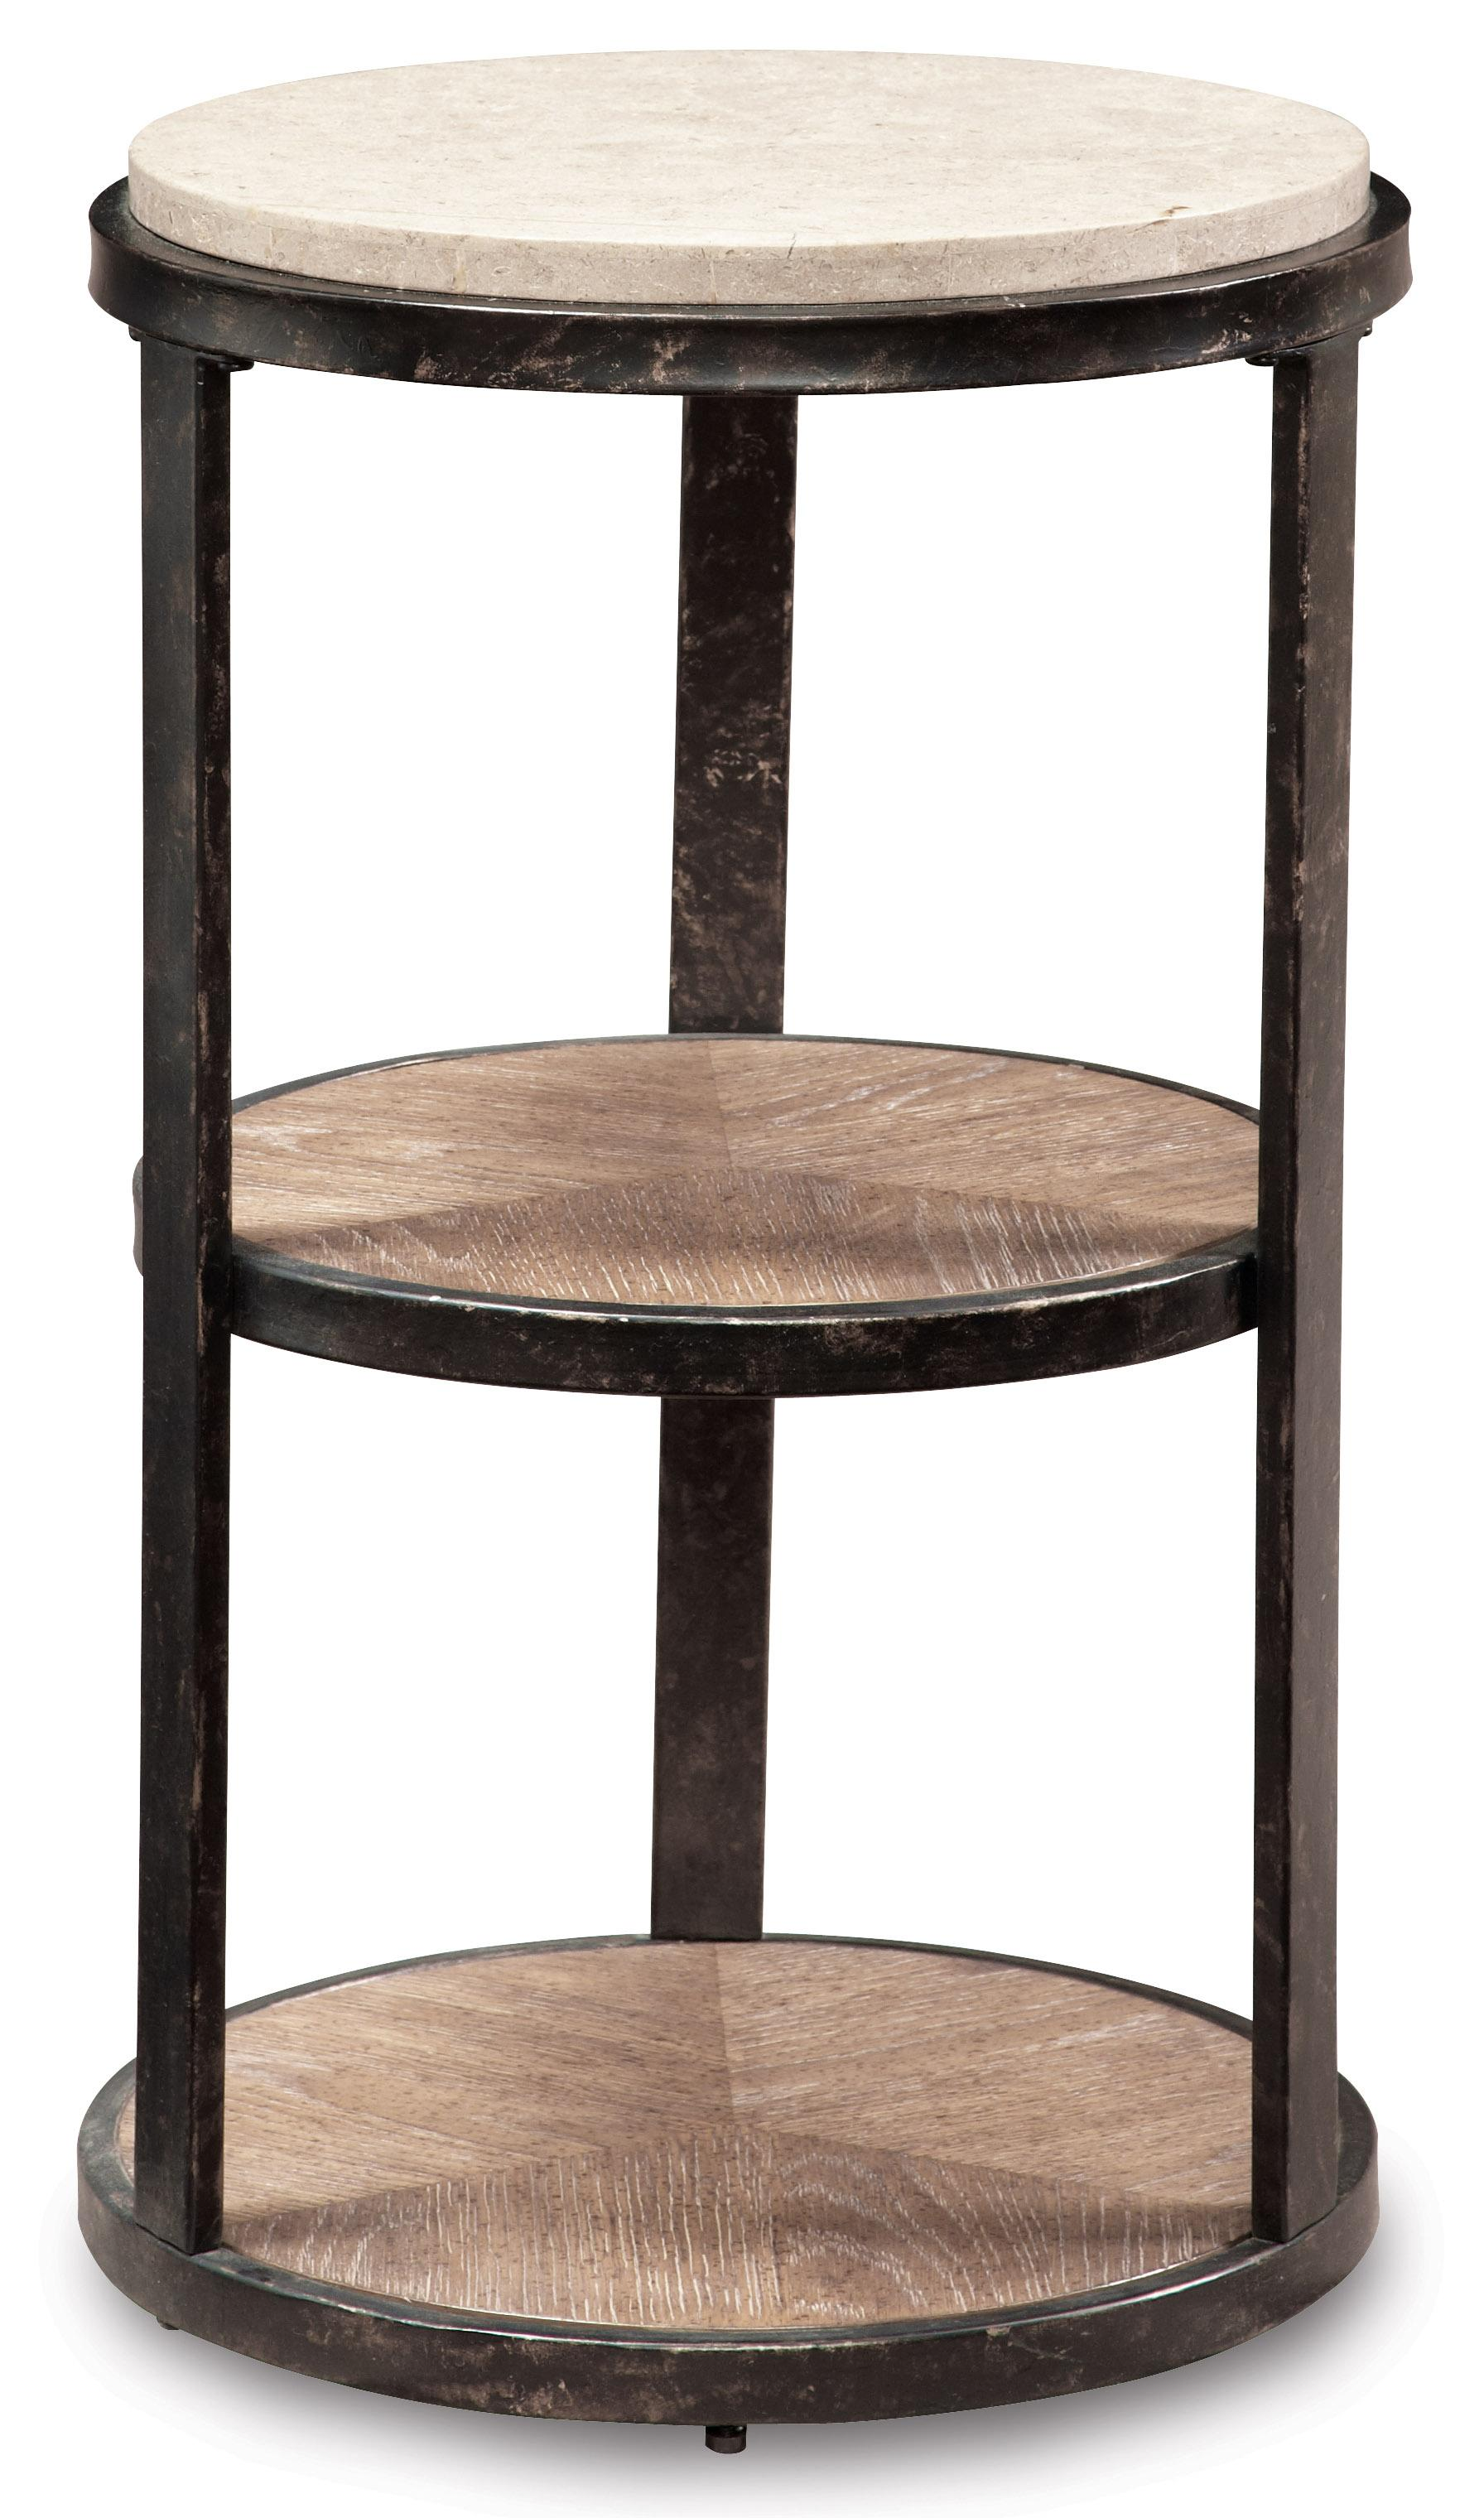 round home metal glass farmhouse extending wood leg and oak woodworking chairs depot small unfinished spaces double table painted for legs plans dining black extendin diy ideas